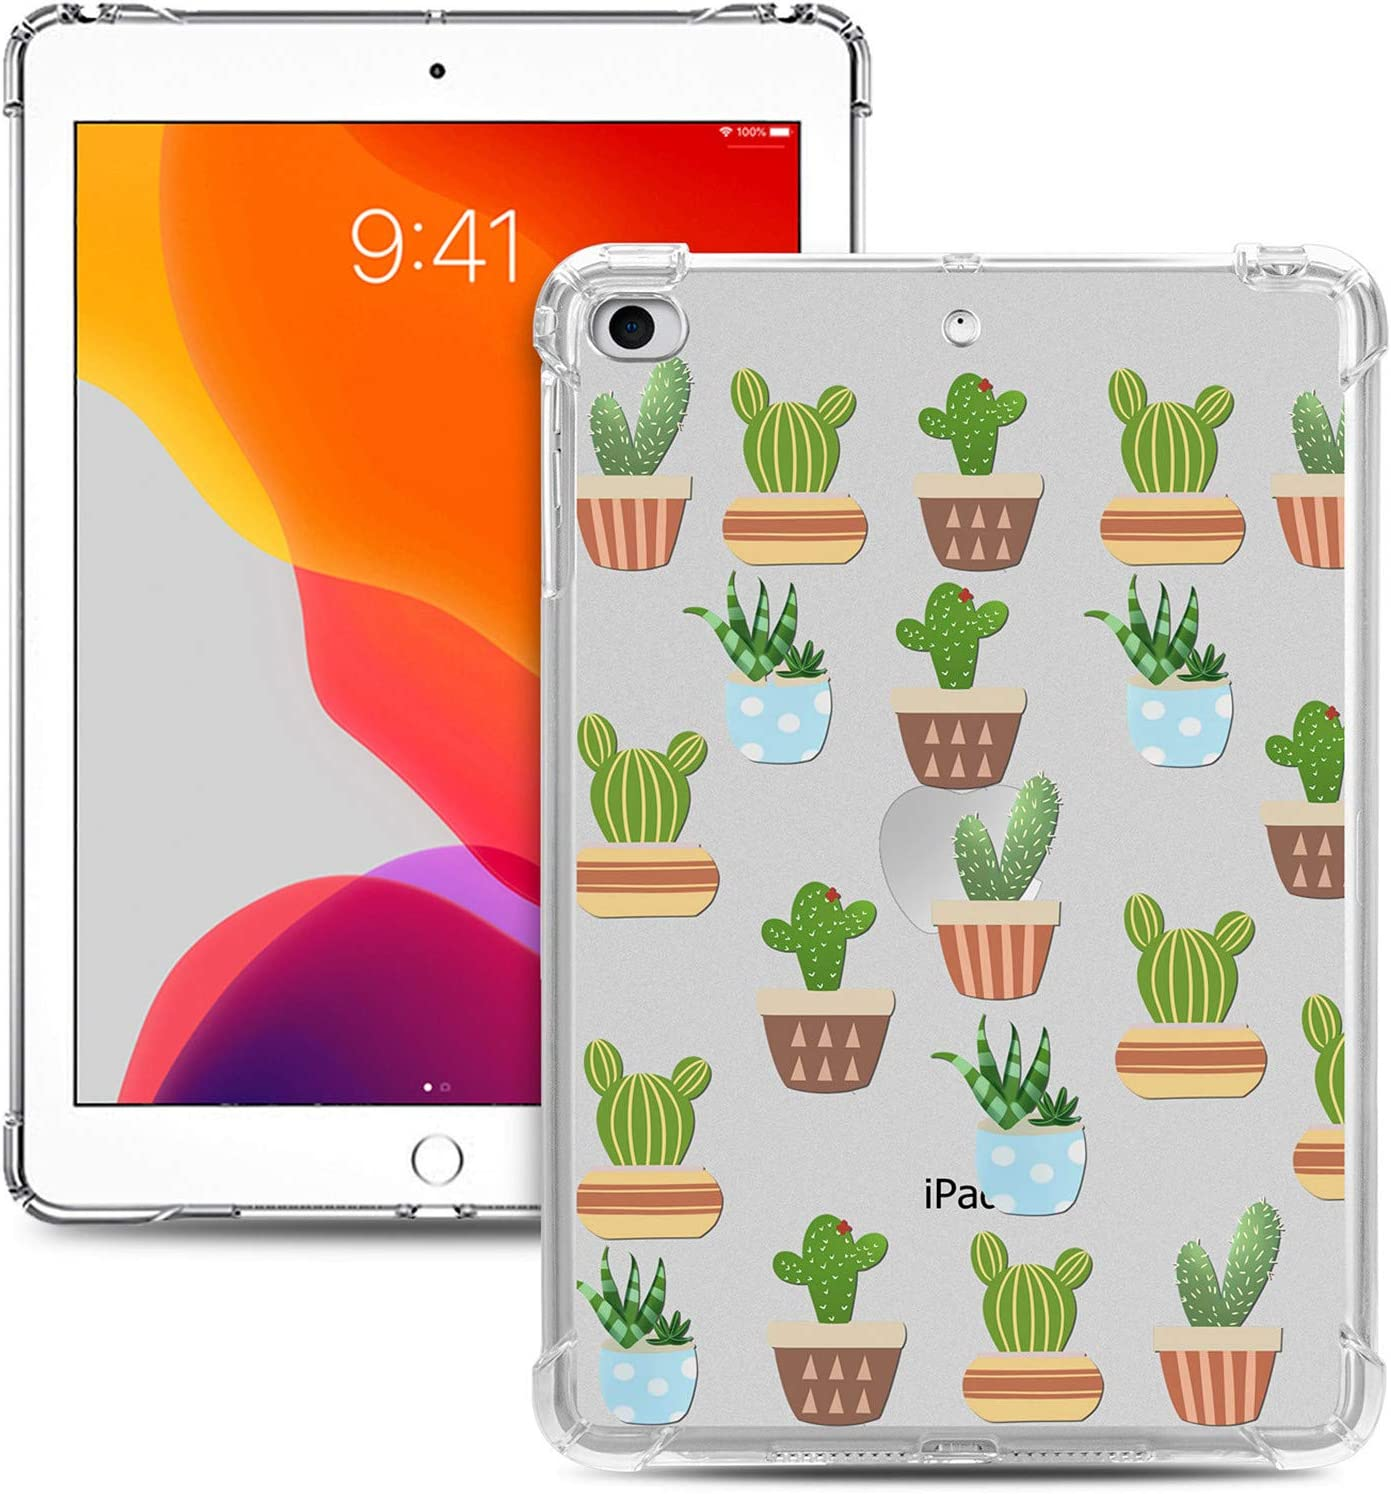 iPad Mini Case, Dteck Slim Lightweight Colorful Design [Corner Protection/Scratch Resistant] Soft TPU Clear Back Protective Cover for Apple iPad Mini 1/Mini 2/Mini 3/Mini 4/Mini 5, Cactus